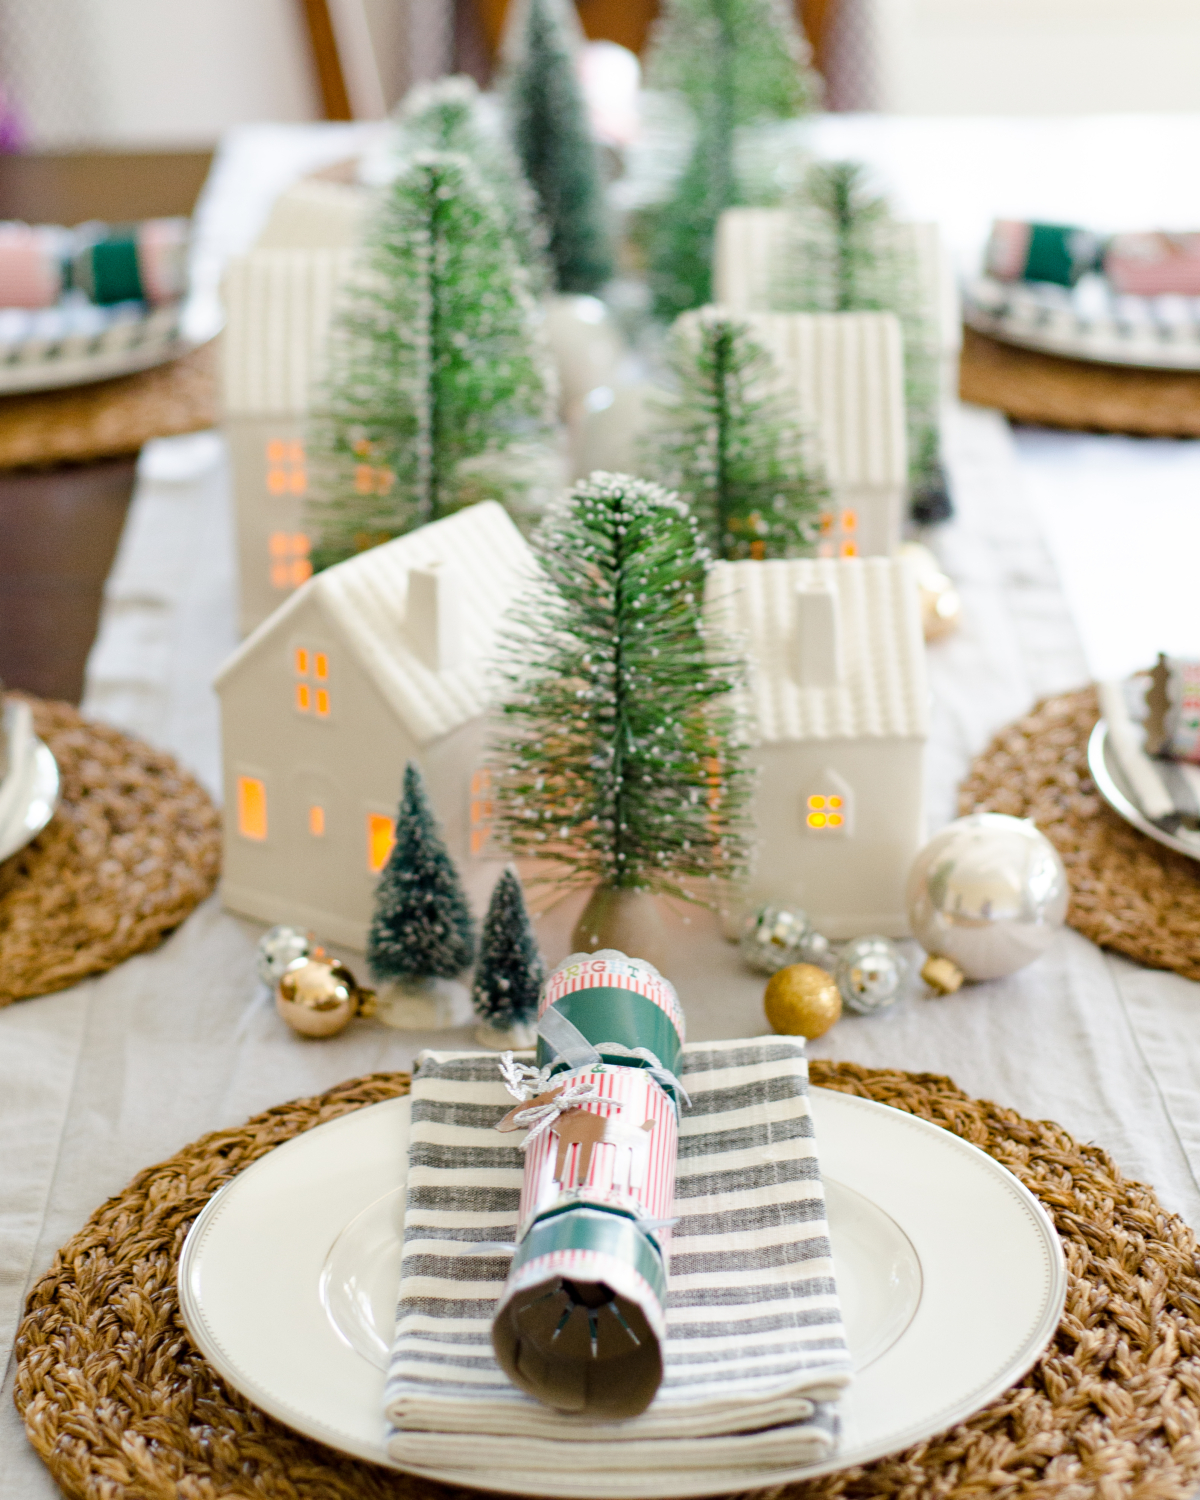 A simple and classic Christmas dining room with ceramic houses and bottle brush trees used as a Christmas centerpiece idea.